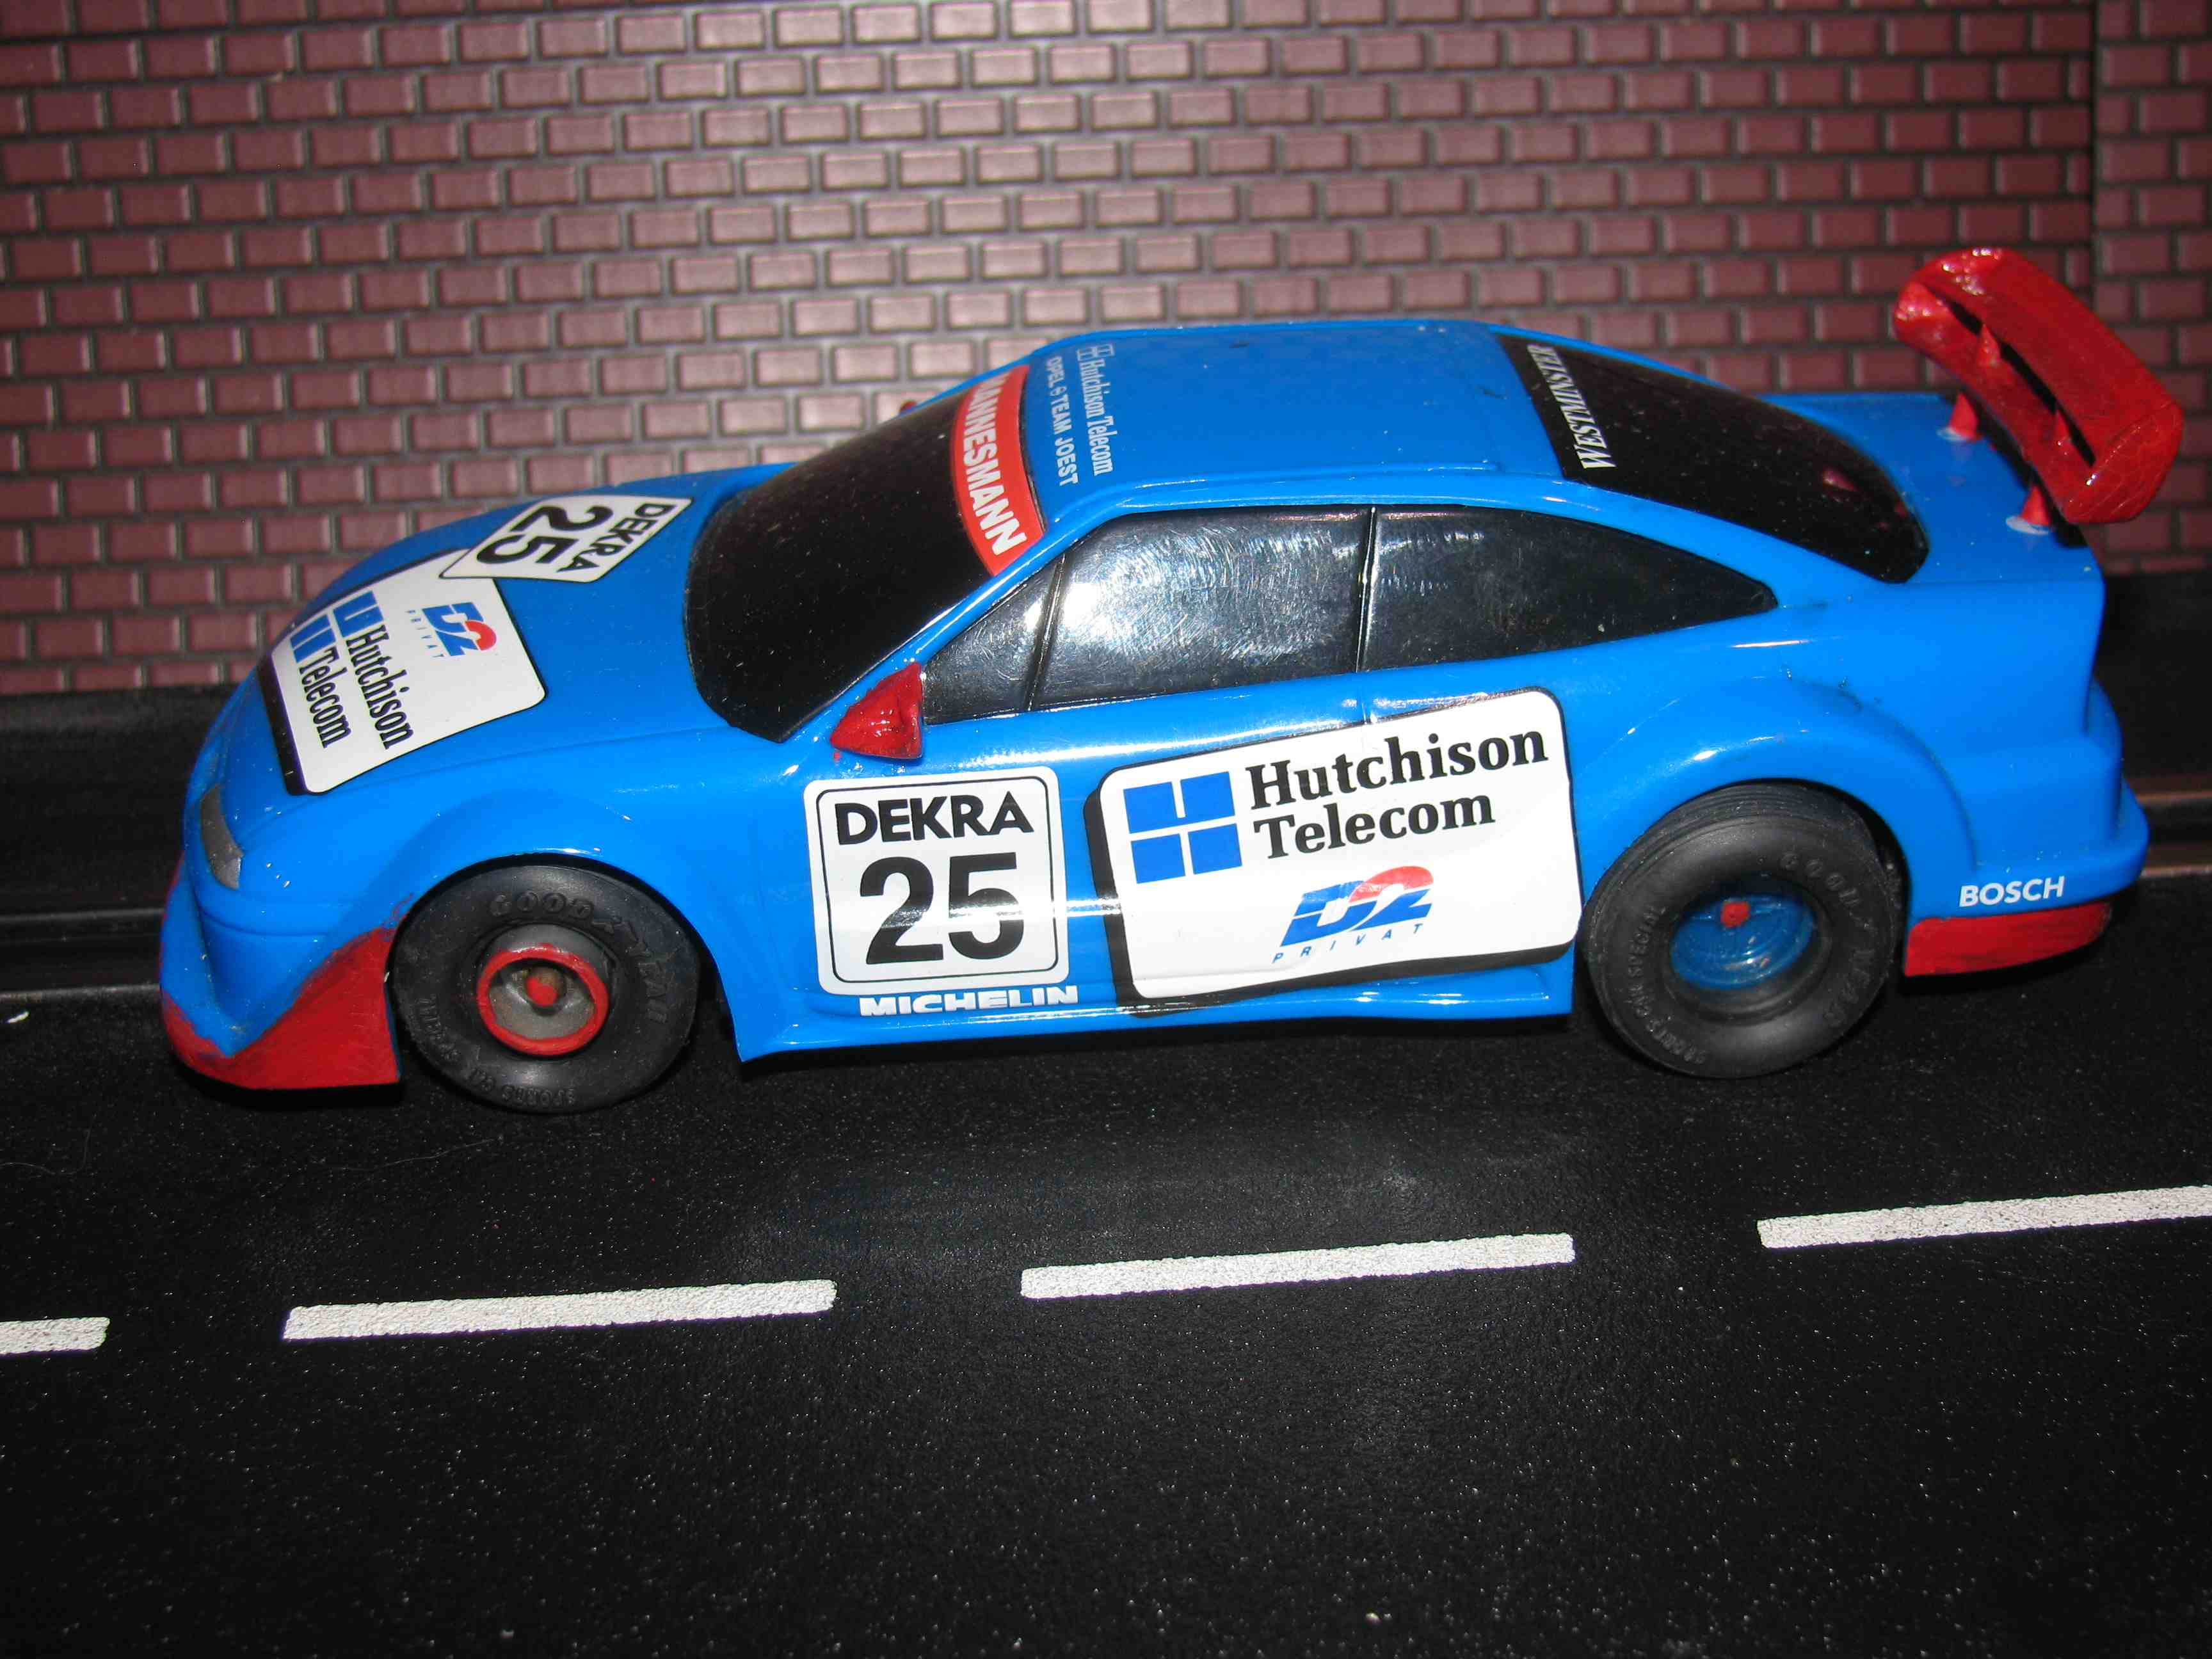 * SOLD * Hornby/SCX D2 OPEL Team Joest DEKRA Racer Slot Car 1/32 Scale, Blue, Car 25